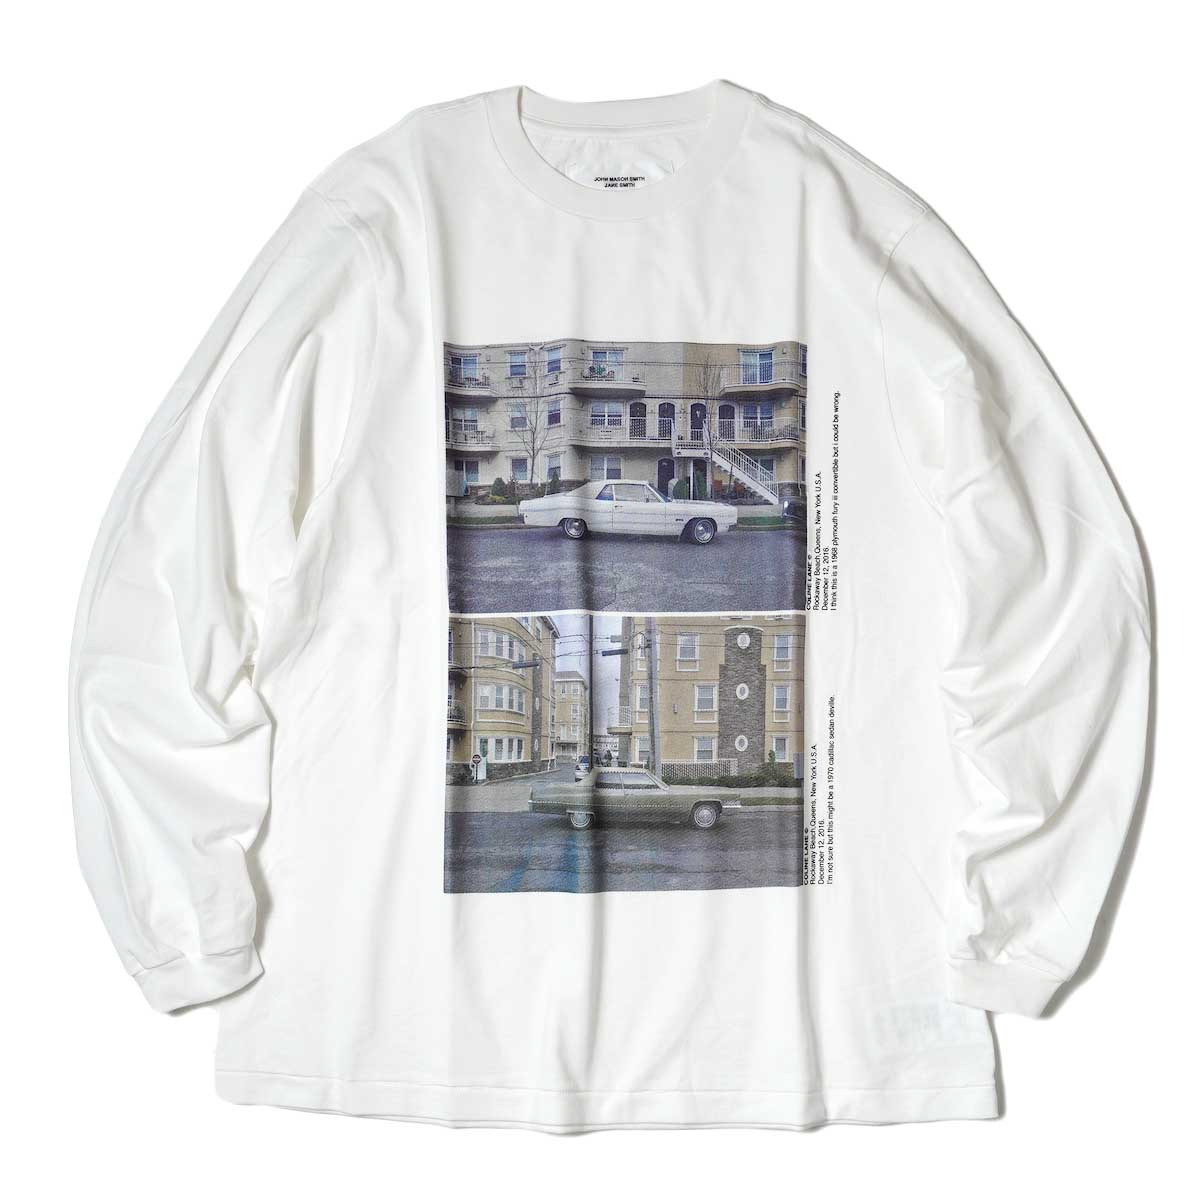 JANE SMITH / CADILLAC PLYMOUTH L/S T-Shirt (White) 正面